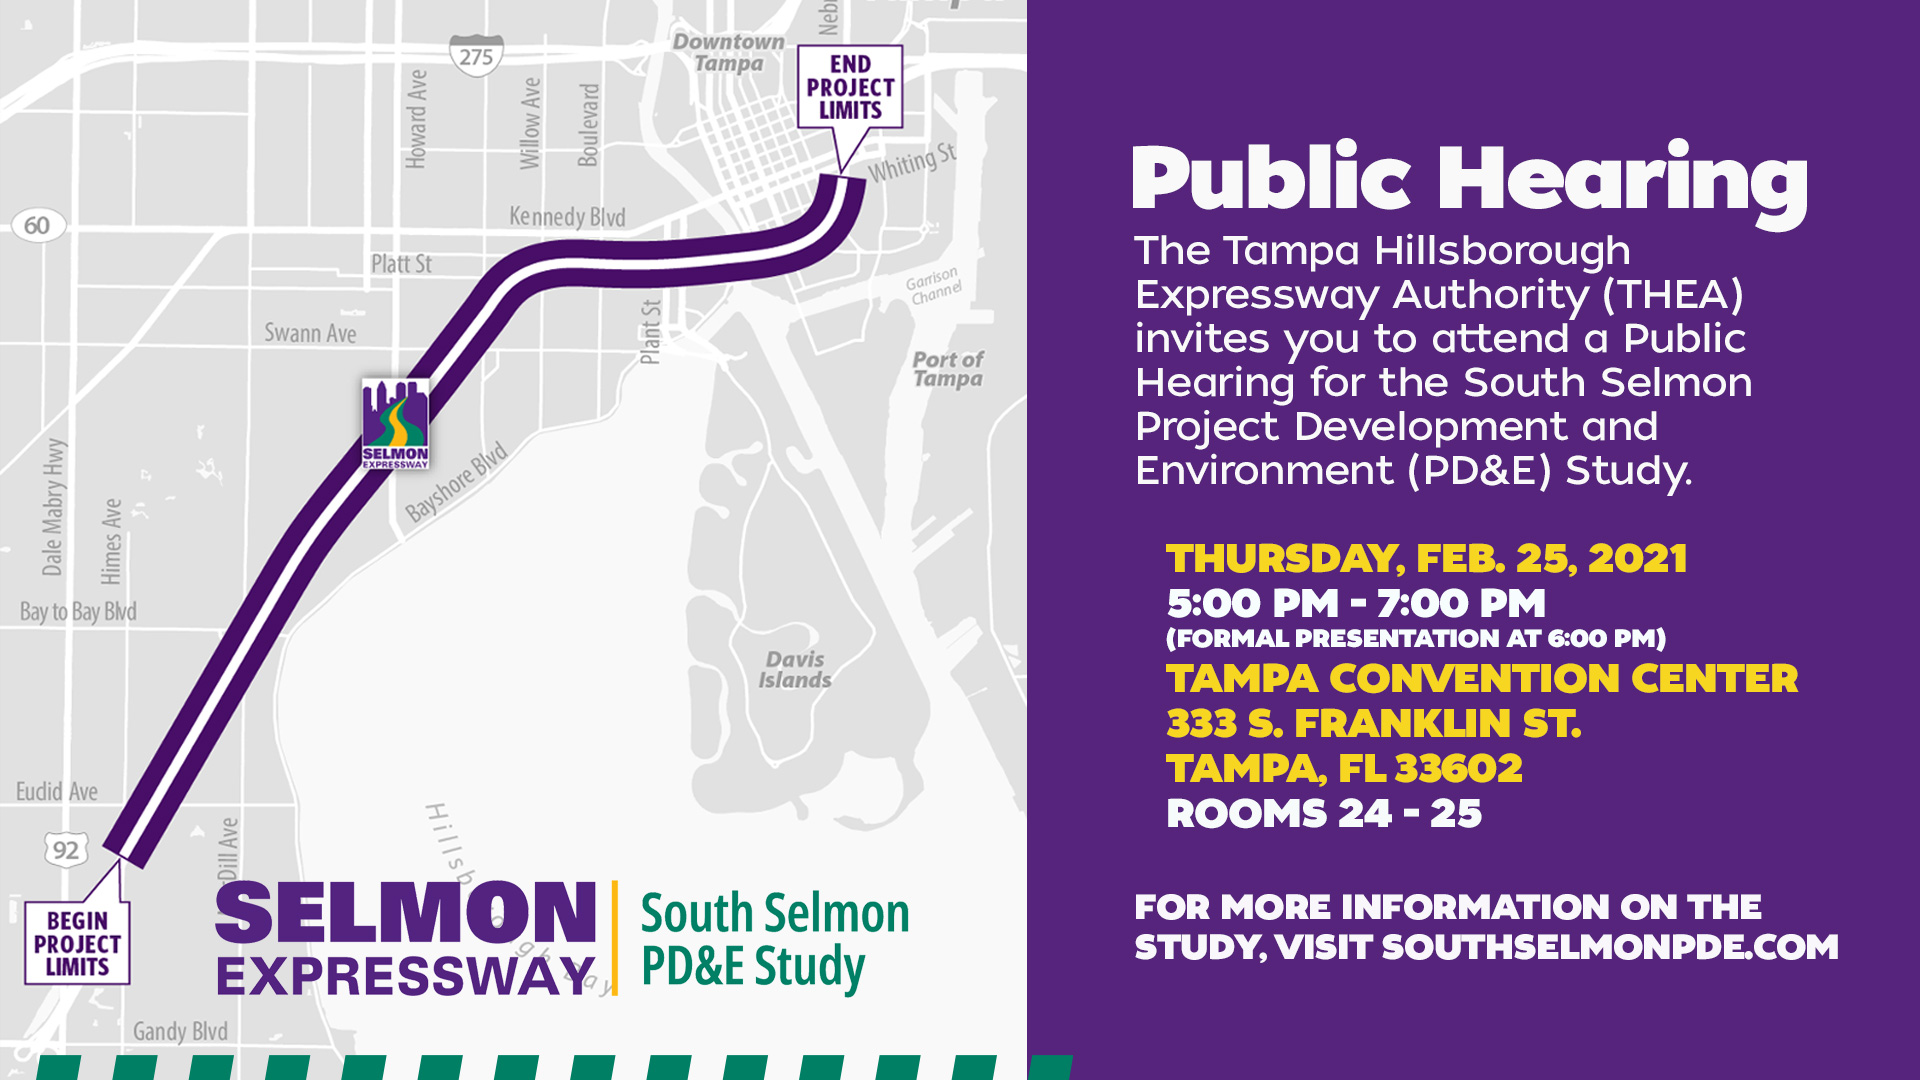 THEA to Hold Public Hearing for the South Selmon Project Development and Environment (PD&E) Study